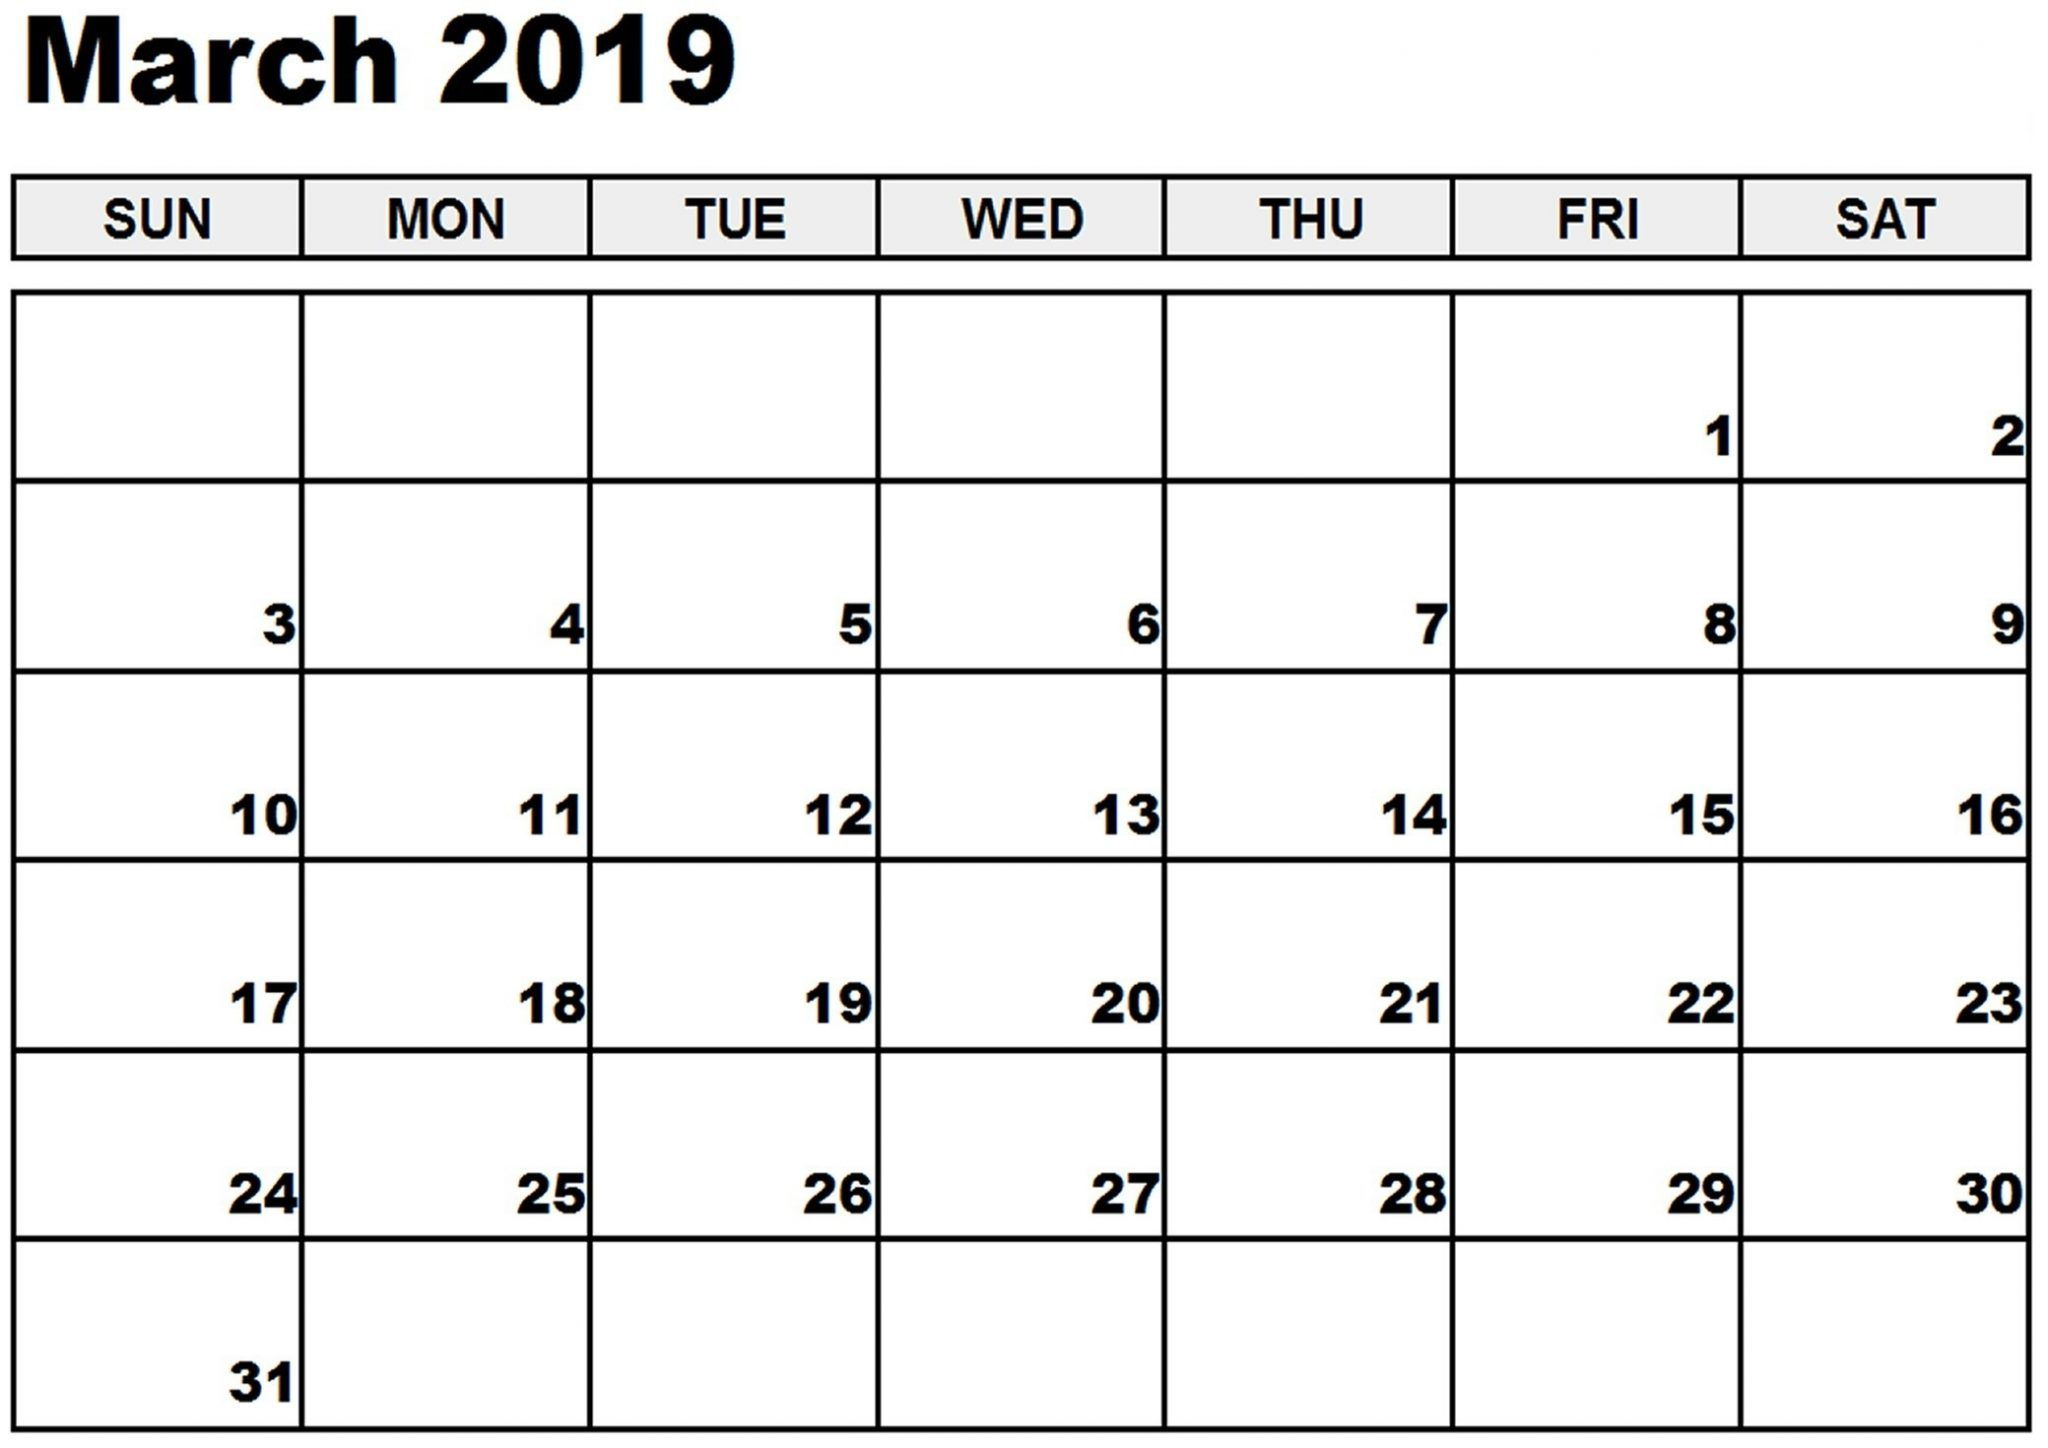 2019 March December Calendar Printable 2019 March Calendar #march #marchcalendar #March2019Calendar